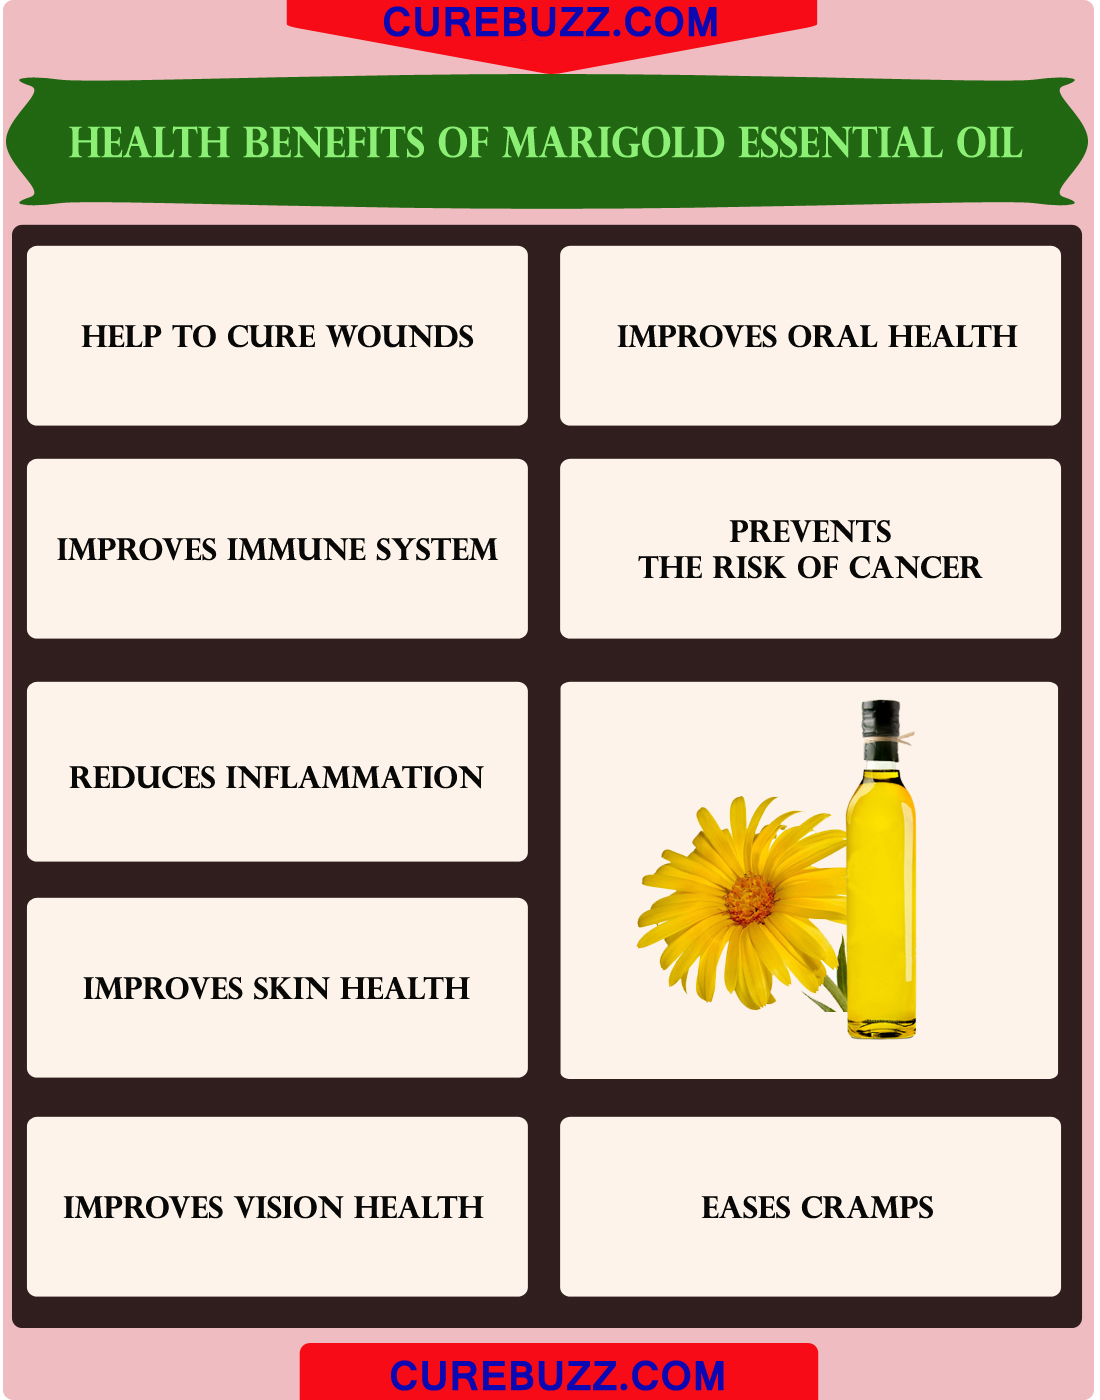 Health Benefits of Marigold Essential Oil